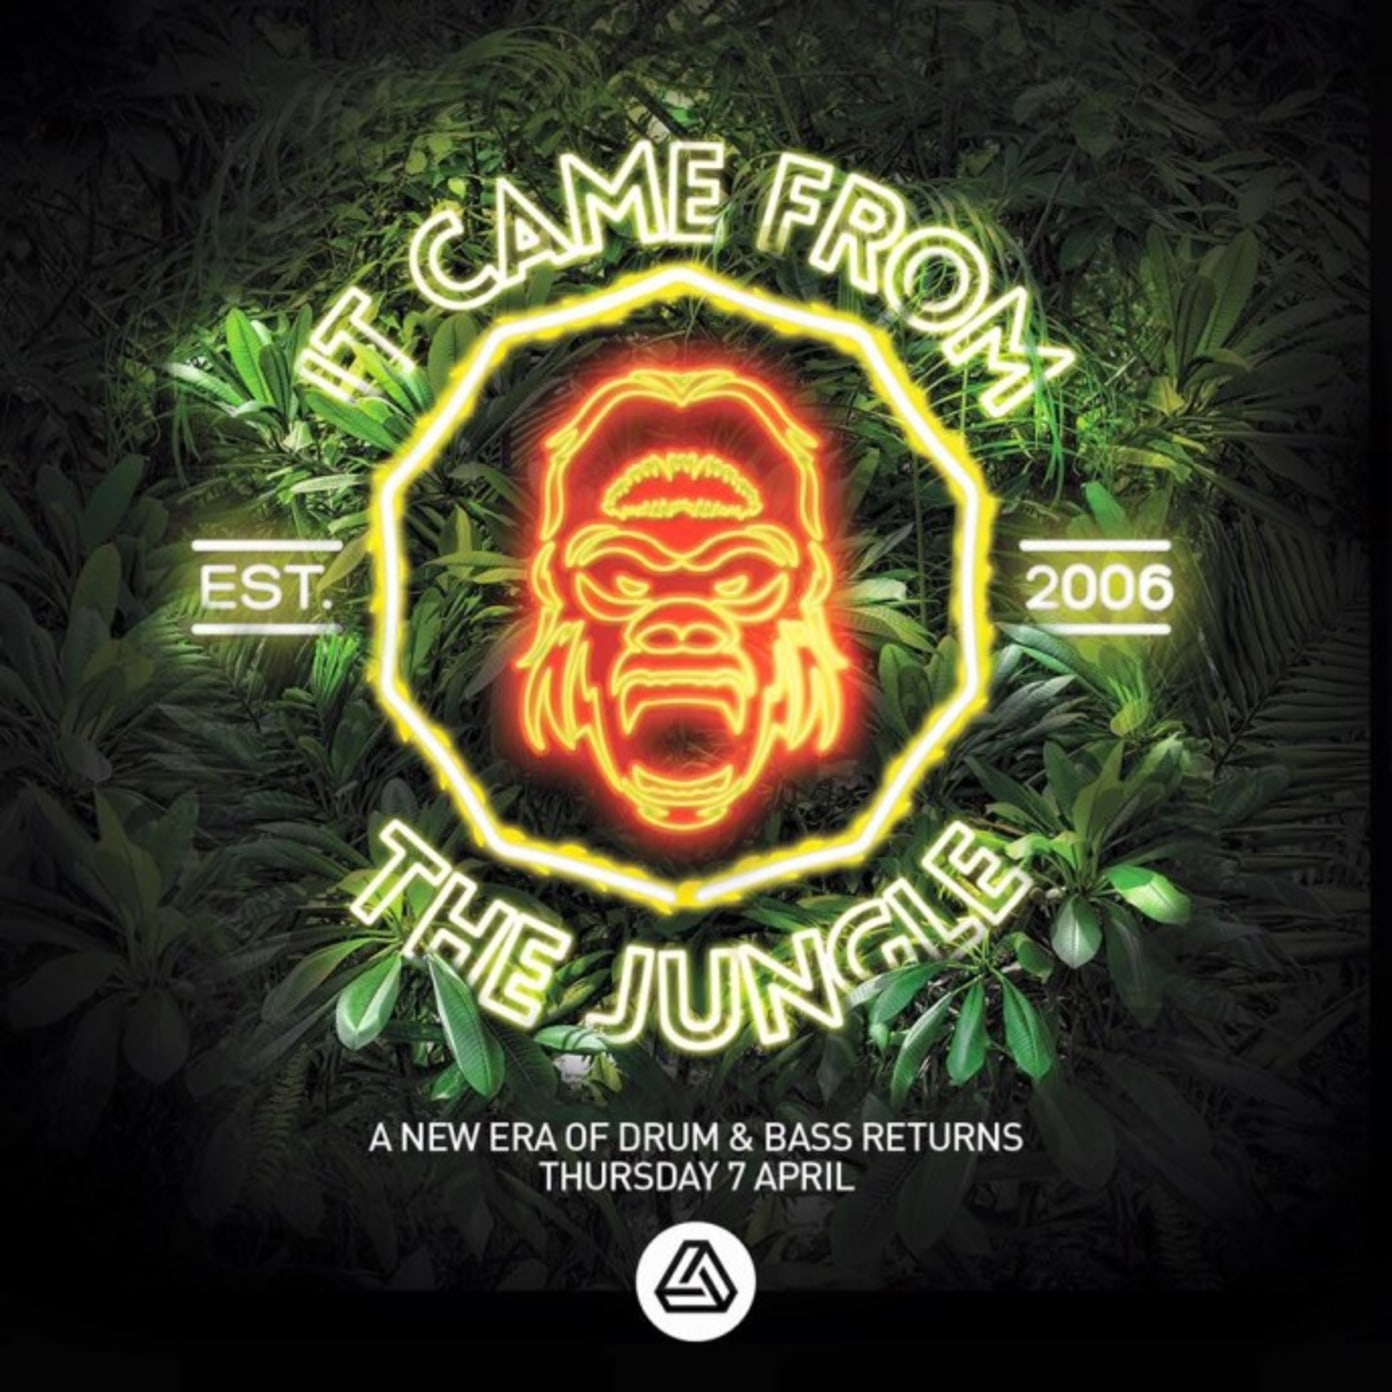 It came from the Jungle: ERA